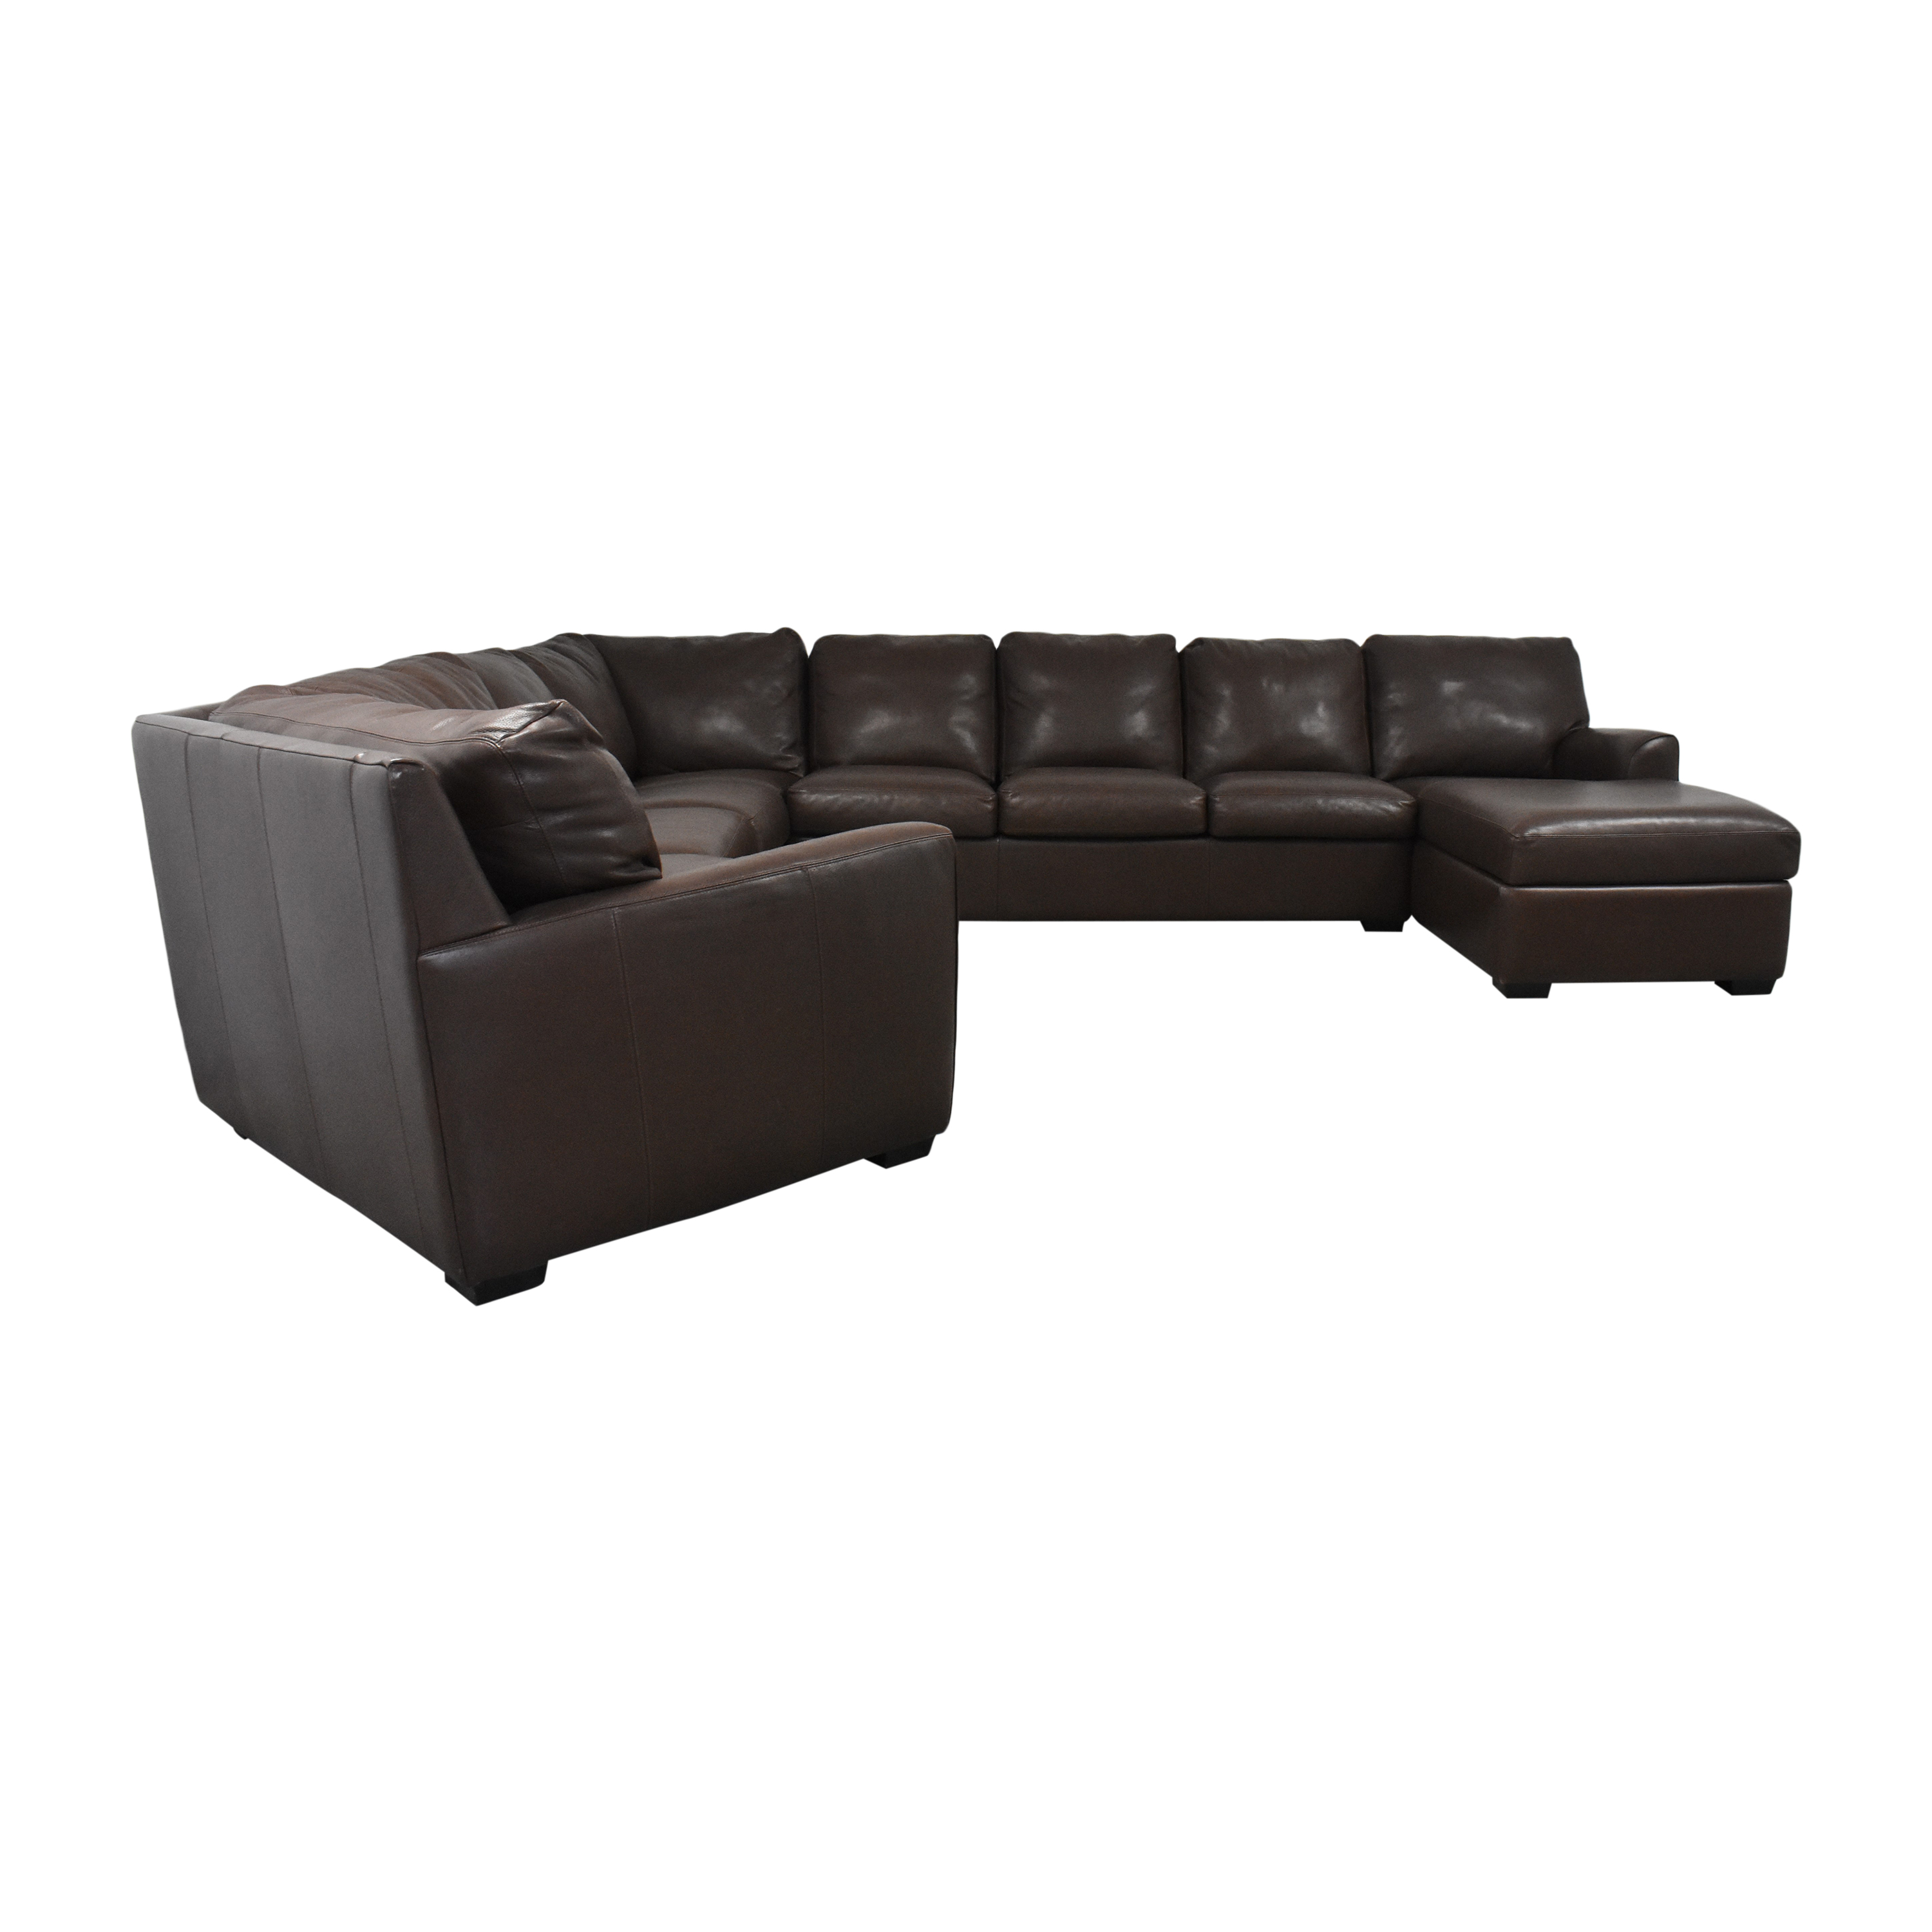 American Leather American Leather Kaden Sectional on sale